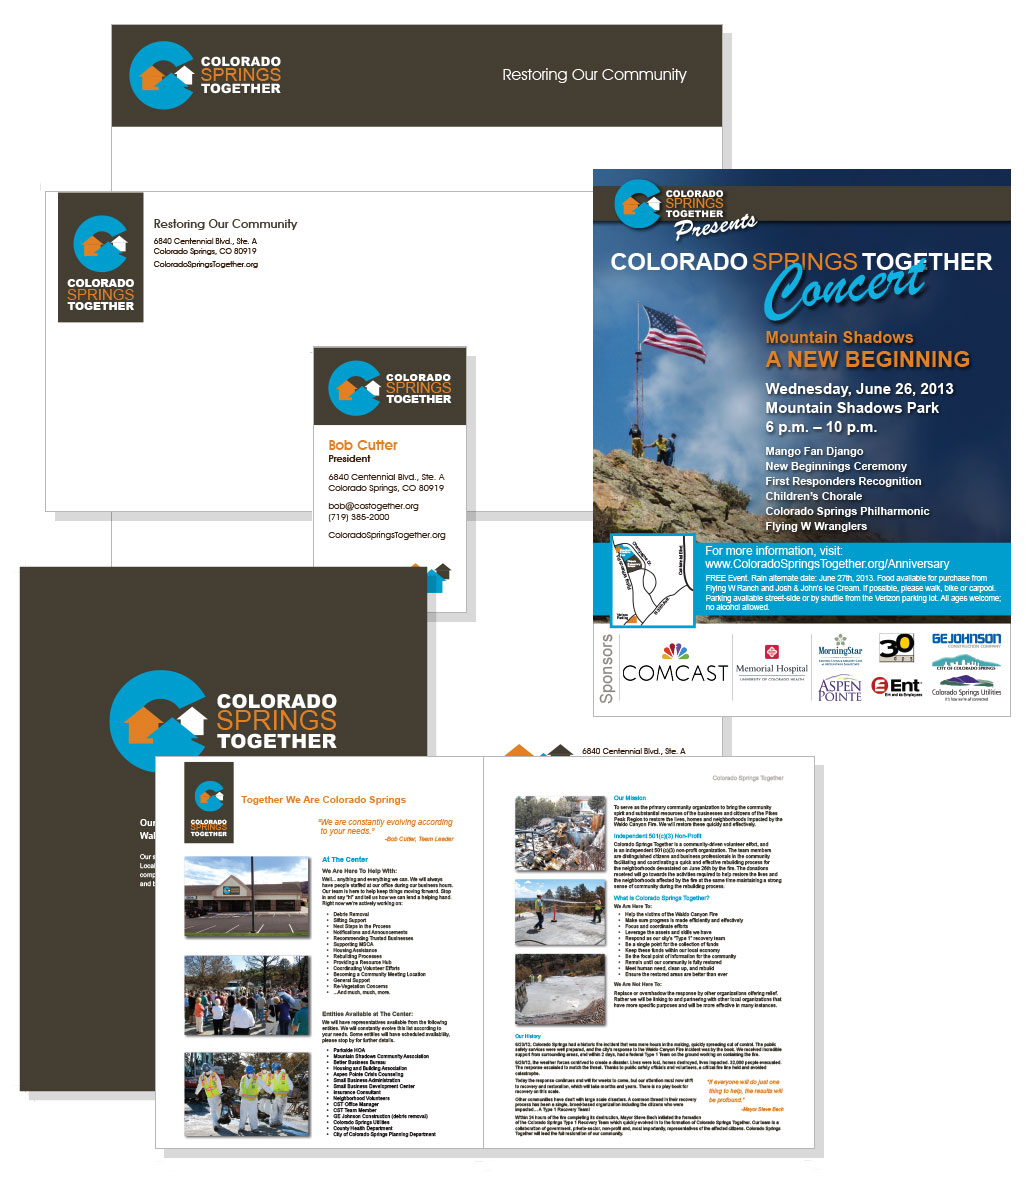 Colorado Springs Together Webpage Design Examples